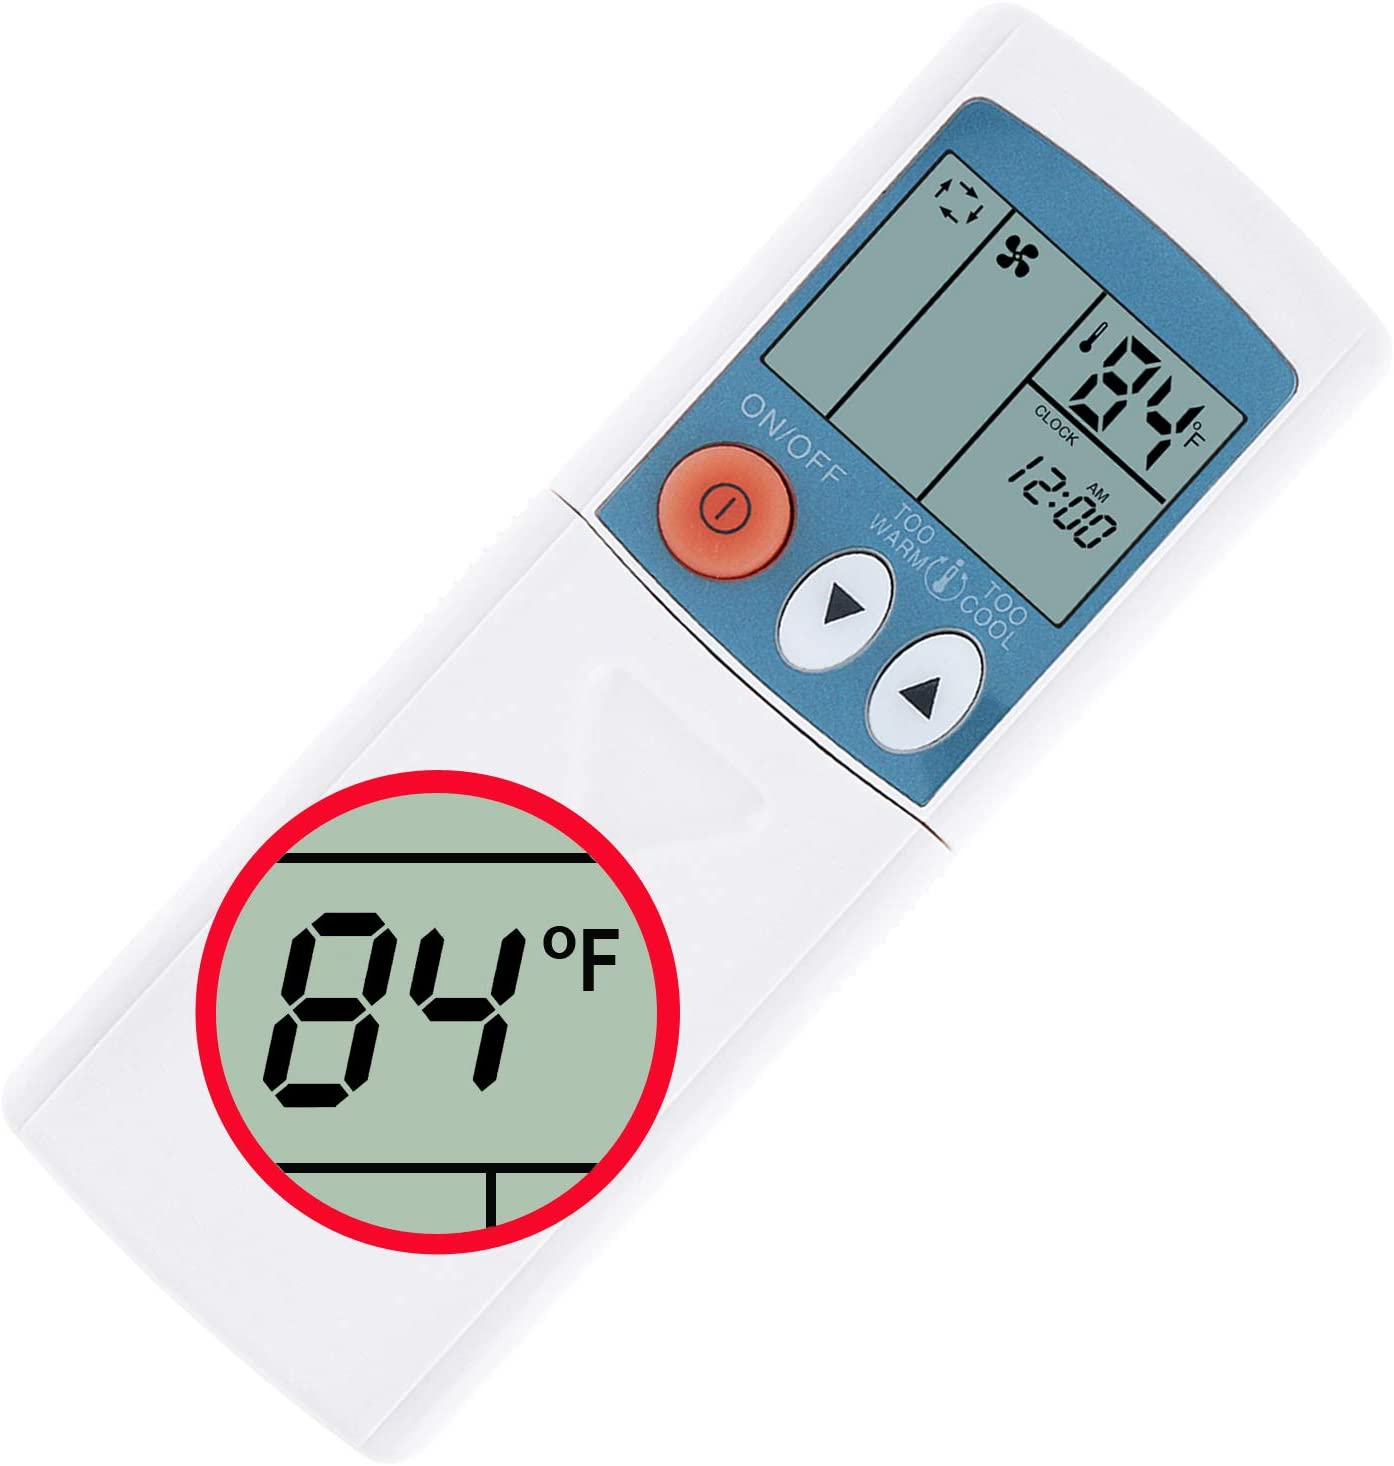 CHOUBENBEN Universal Remote Control for Mitsubishi Msz-Ge09na Msz-Ge12na Msz-Ge15na Msz-Ge18na Msz-Ge24na Msy-Ge09na A/C Air Conditioner Display in Fahrenheit